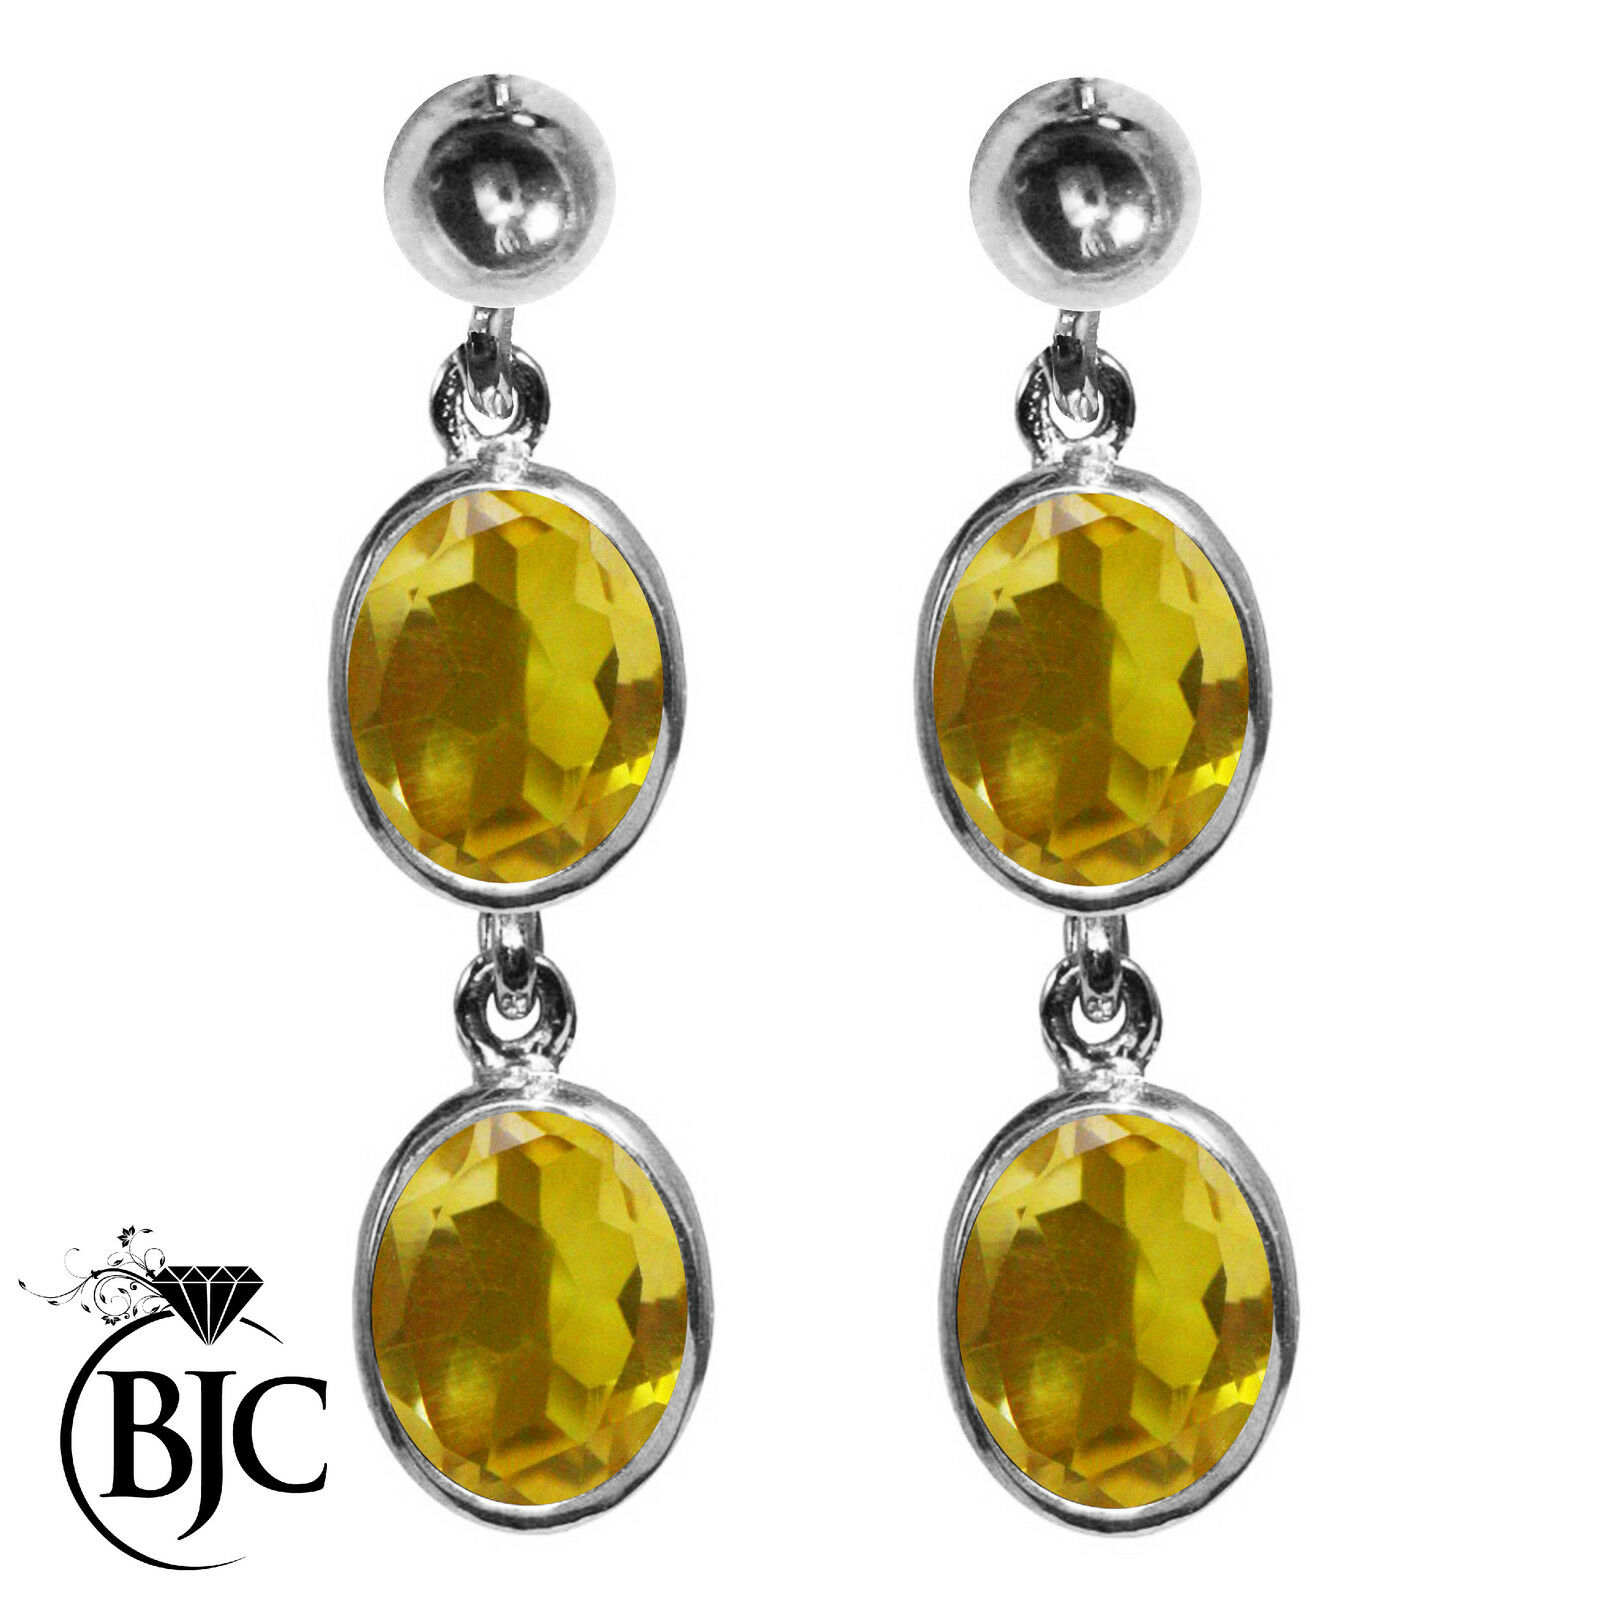 BJC® 9ct White gold Natural Citrine Oval Double Drop Dangling Studs Earrings